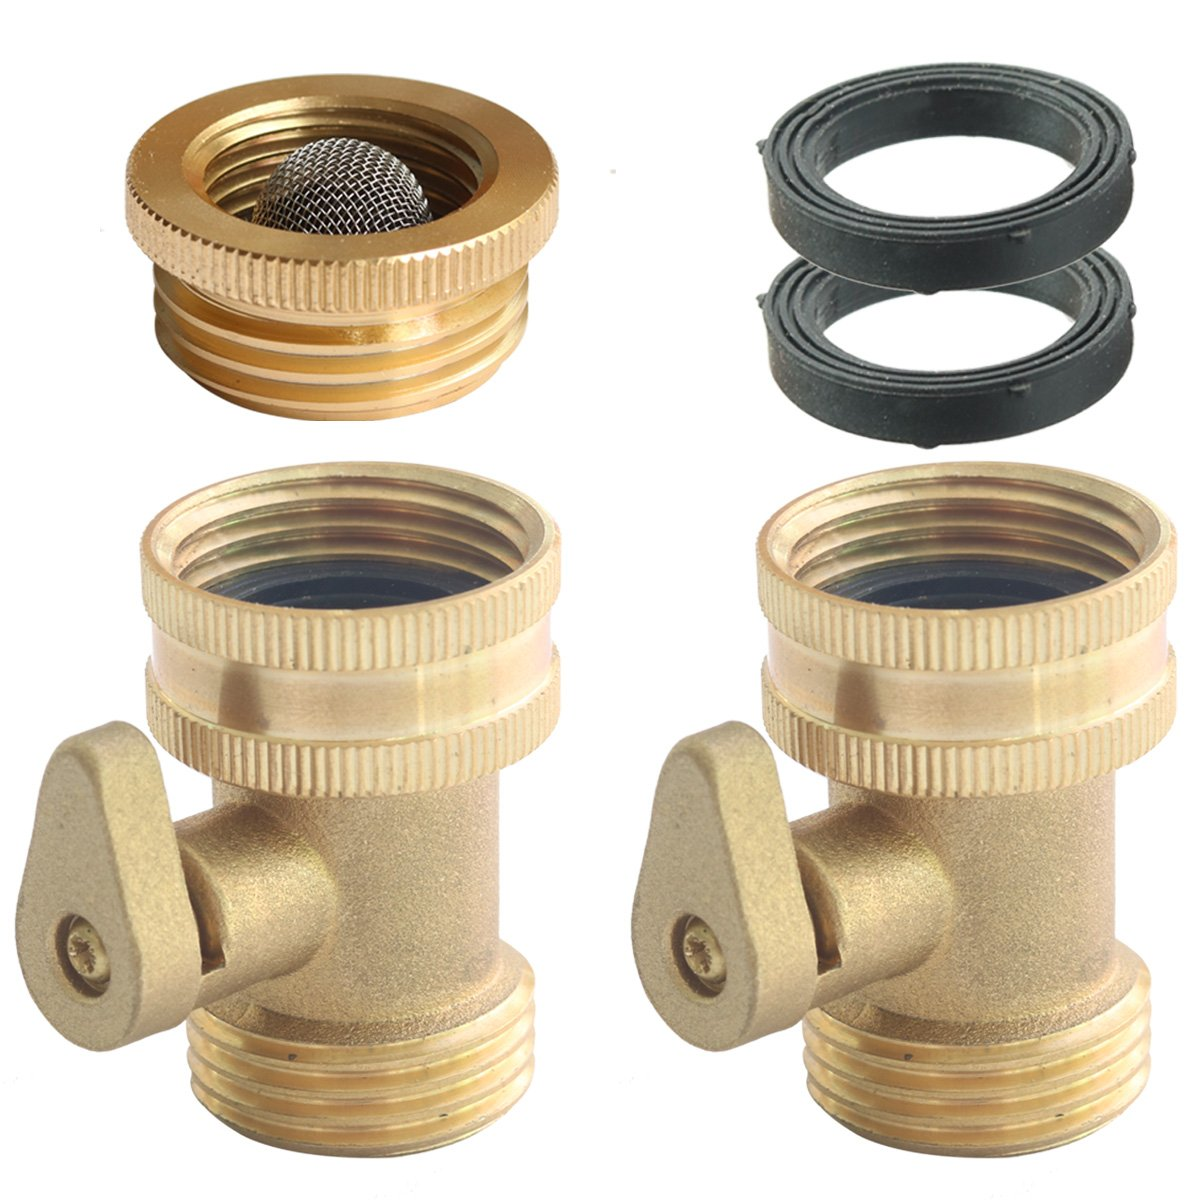 PLG Solid Brass Water Hose Shut-Off Valve by PLG